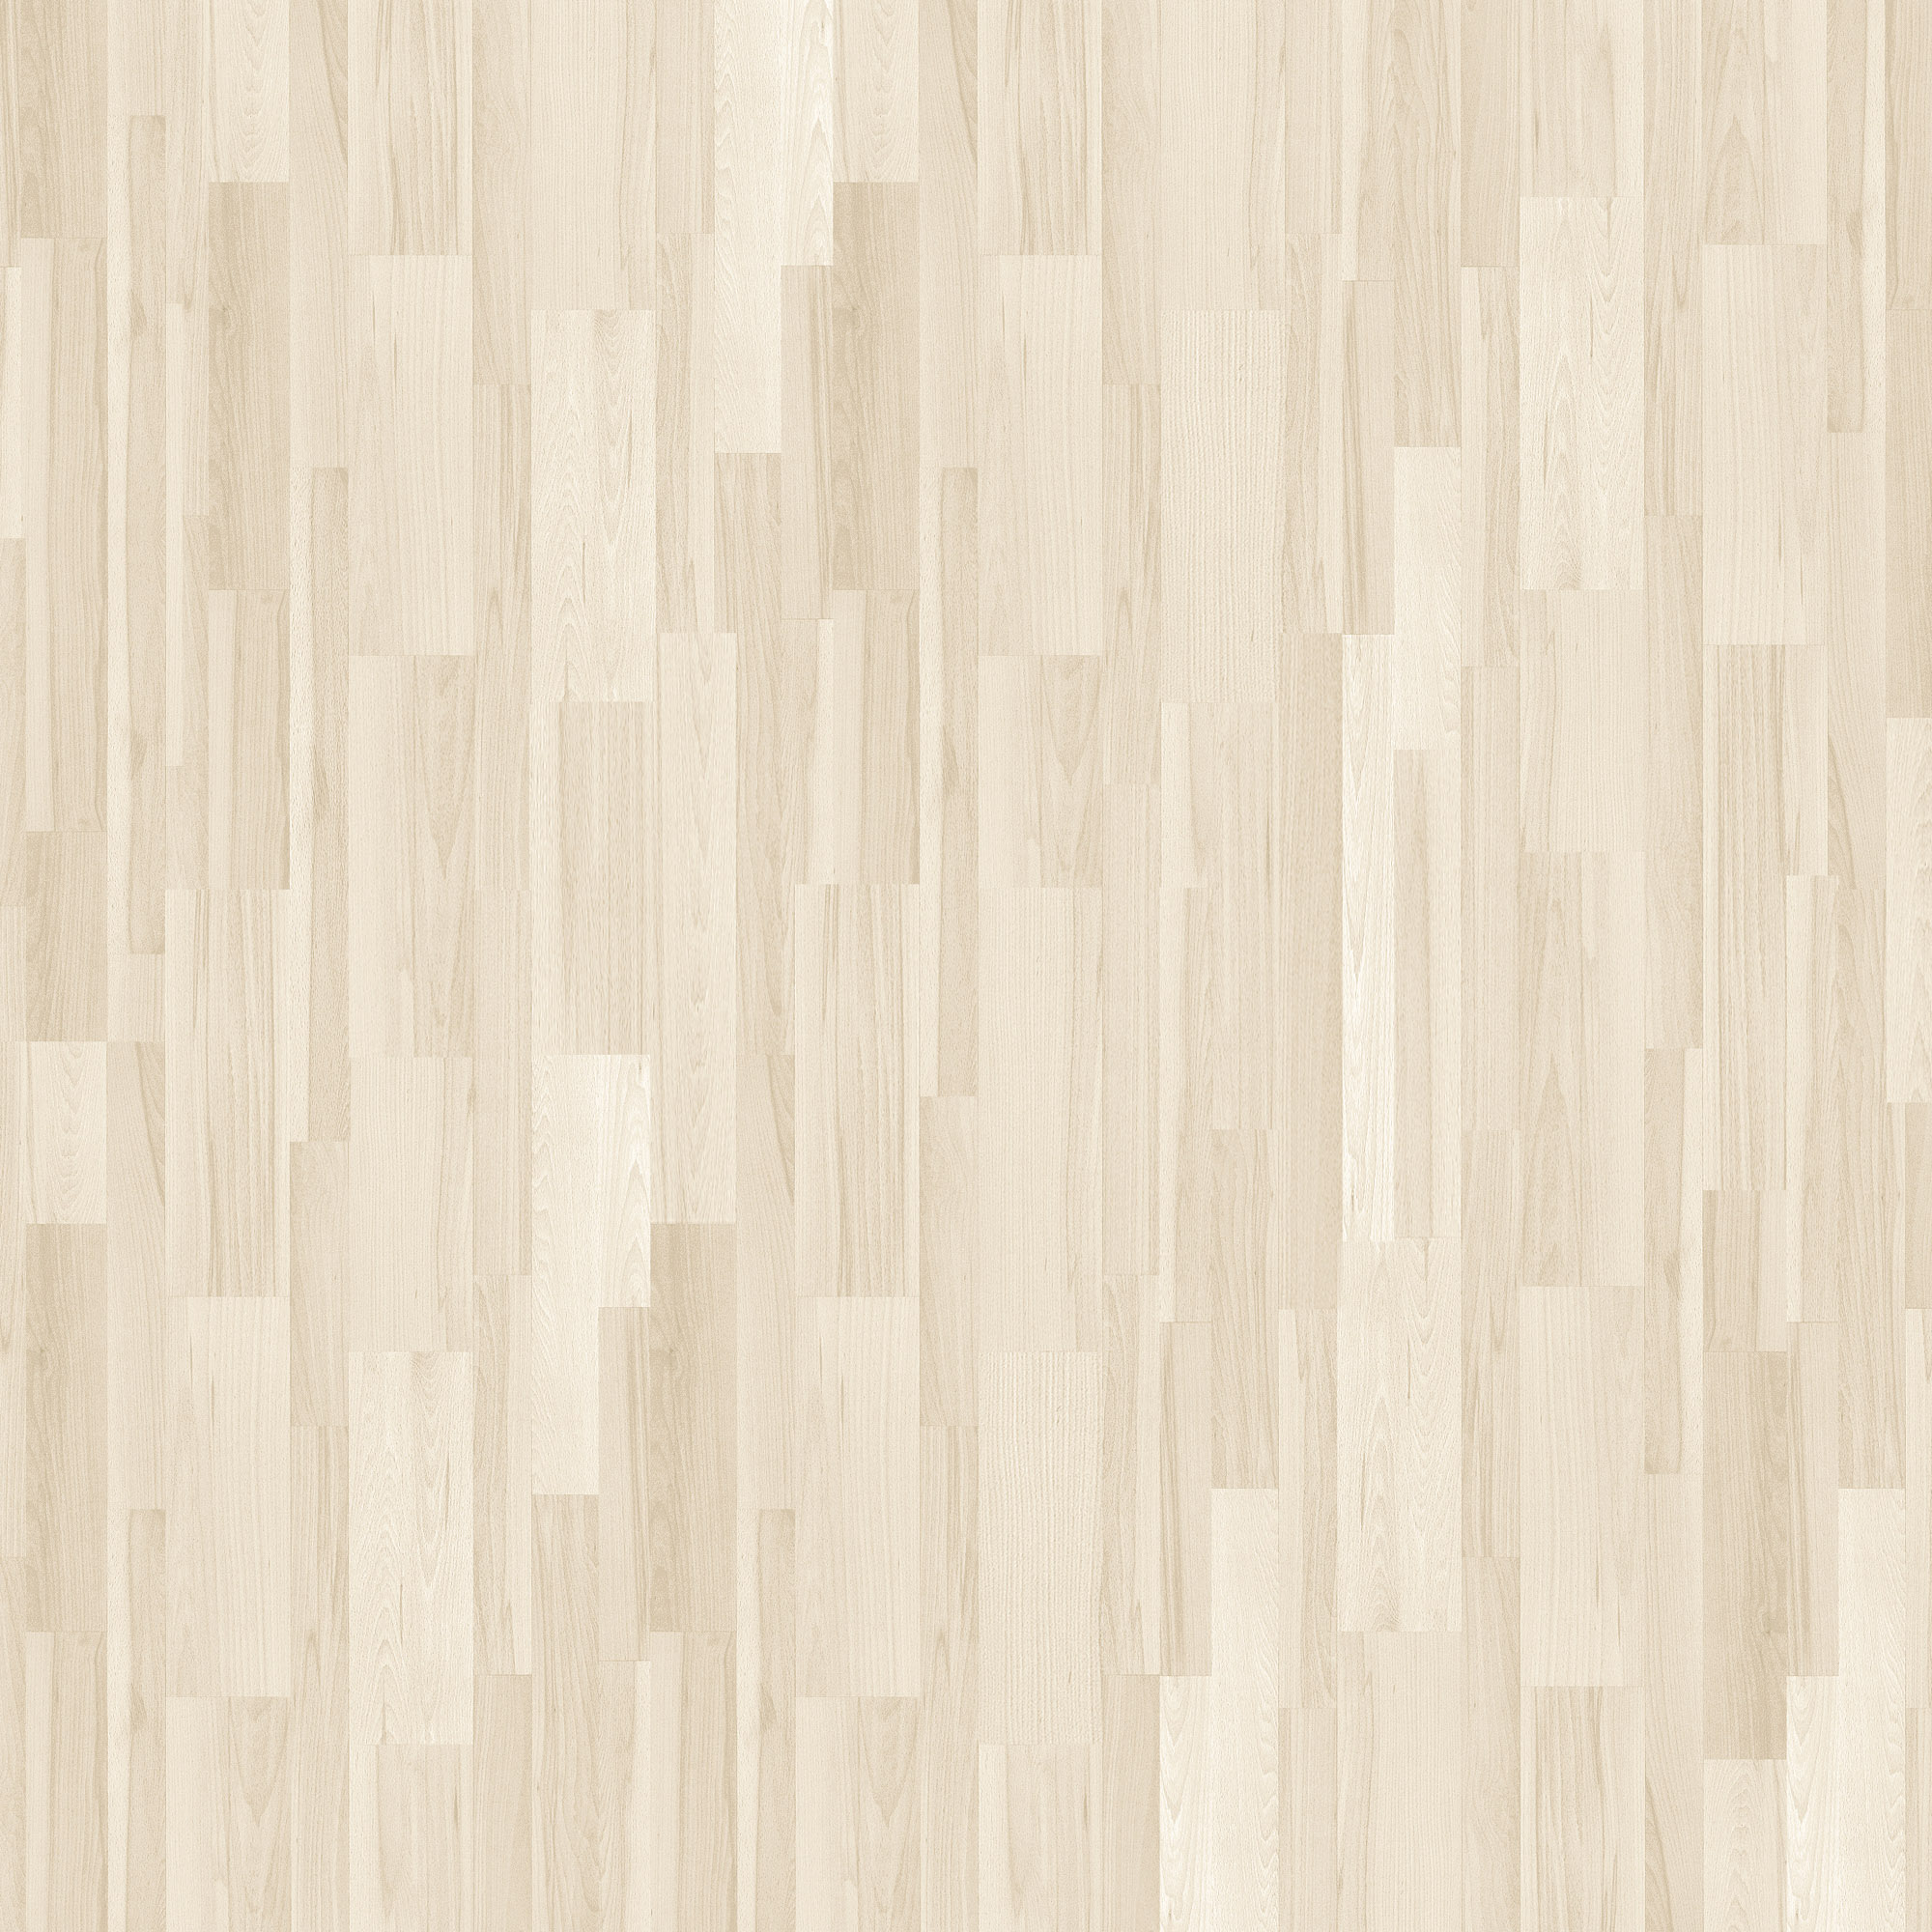 Wood planks white hardwood floor white hardwood floor jpg for Hardwood laminate